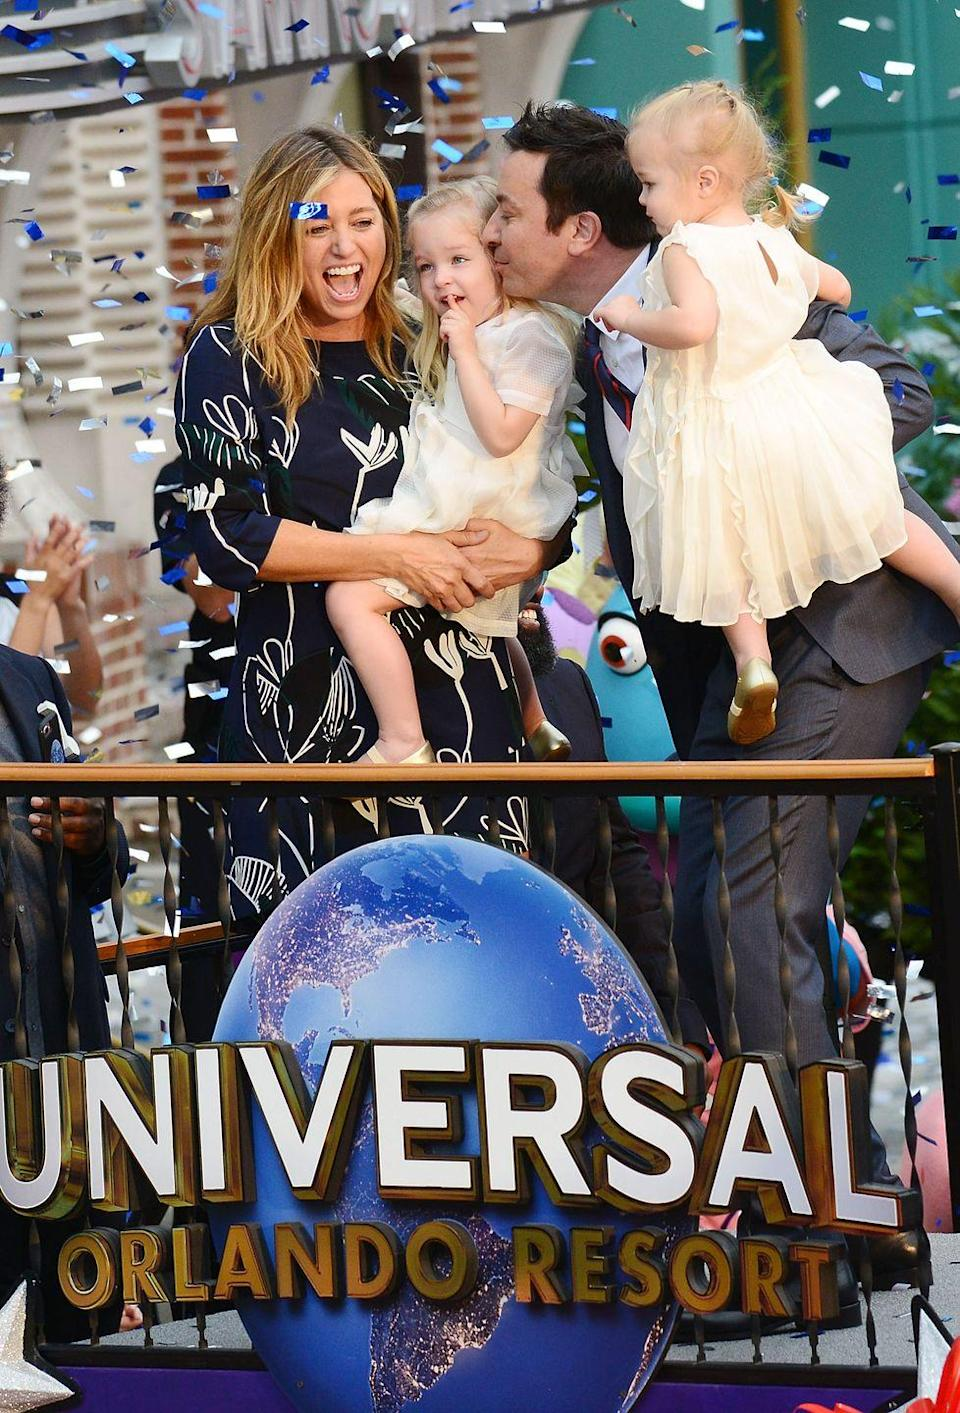 """<p><strong>Children</strong>: Winnie Rose Fallon (6) and Frances Cole Fallon (5) </p><p>One thing the comedian and late-night host takes seriously? Raising his <a href=""""https://www.oprahmag.com/entertainment/tv-movies/a31927410/jimmy-fallon-kids/"""" rel=""""nofollow noopener"""" target=""""_blank"""" data-ylk=""""slk:adorable two daughters"""" class=""""link rapid-noclick-resp"""">adorable two daughters</a> with his wife <a href=""""https://www.oprahmag.com/entertainment/a32012122/jimmy-fallon-wife/"""" rel=""""nofollow noopener"""" target=""""_blank"""" data-ylk=""""slk:Nancy Juvonen"""" class=""""link rapid-noclick-resp"""">Nancy Juvonen</a>. Luckily for all of us who love seeing famous dads and their children, Winnie and Frances are making more frequent appearances on the improvised <a href=""""https://www.youtube.com/watch?v=ryh3e9_8vVk"""" rel=""""nofollow noopener"""" target=""""_blank"""" data-ylk=""""slk:The Tonight Show: &quot;At Home Edition,&quot;"""" class=""""link rapid-noclick-resp""""><em>The Tonight Show: </em>""""At Home Edition,""""</a> amid the ongoing coronavirus pandemic.</p>"""